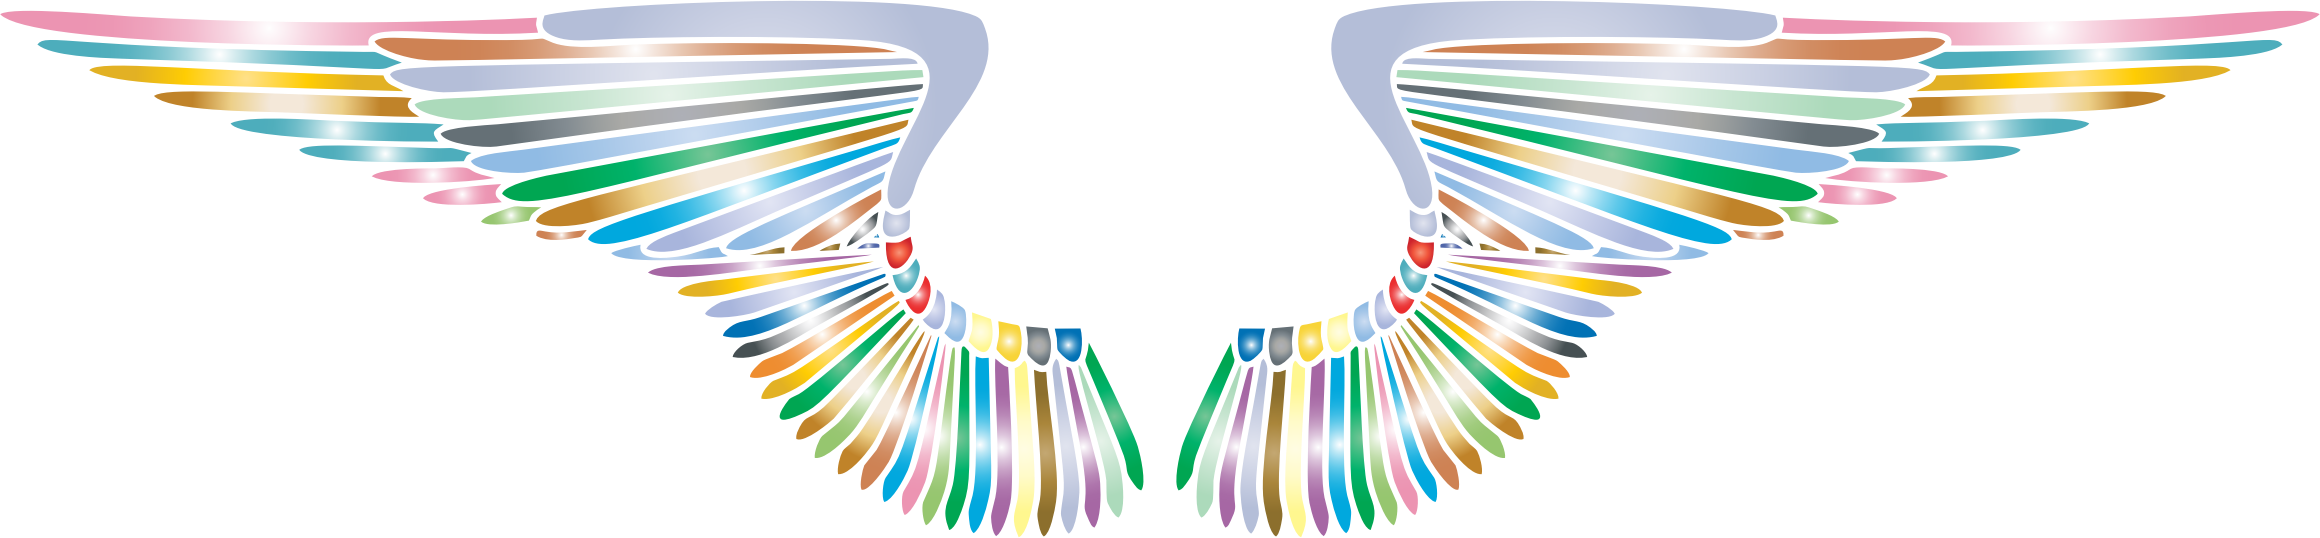 Wings clipart drawn Wings Clipart Prismatic Wings Prismatic